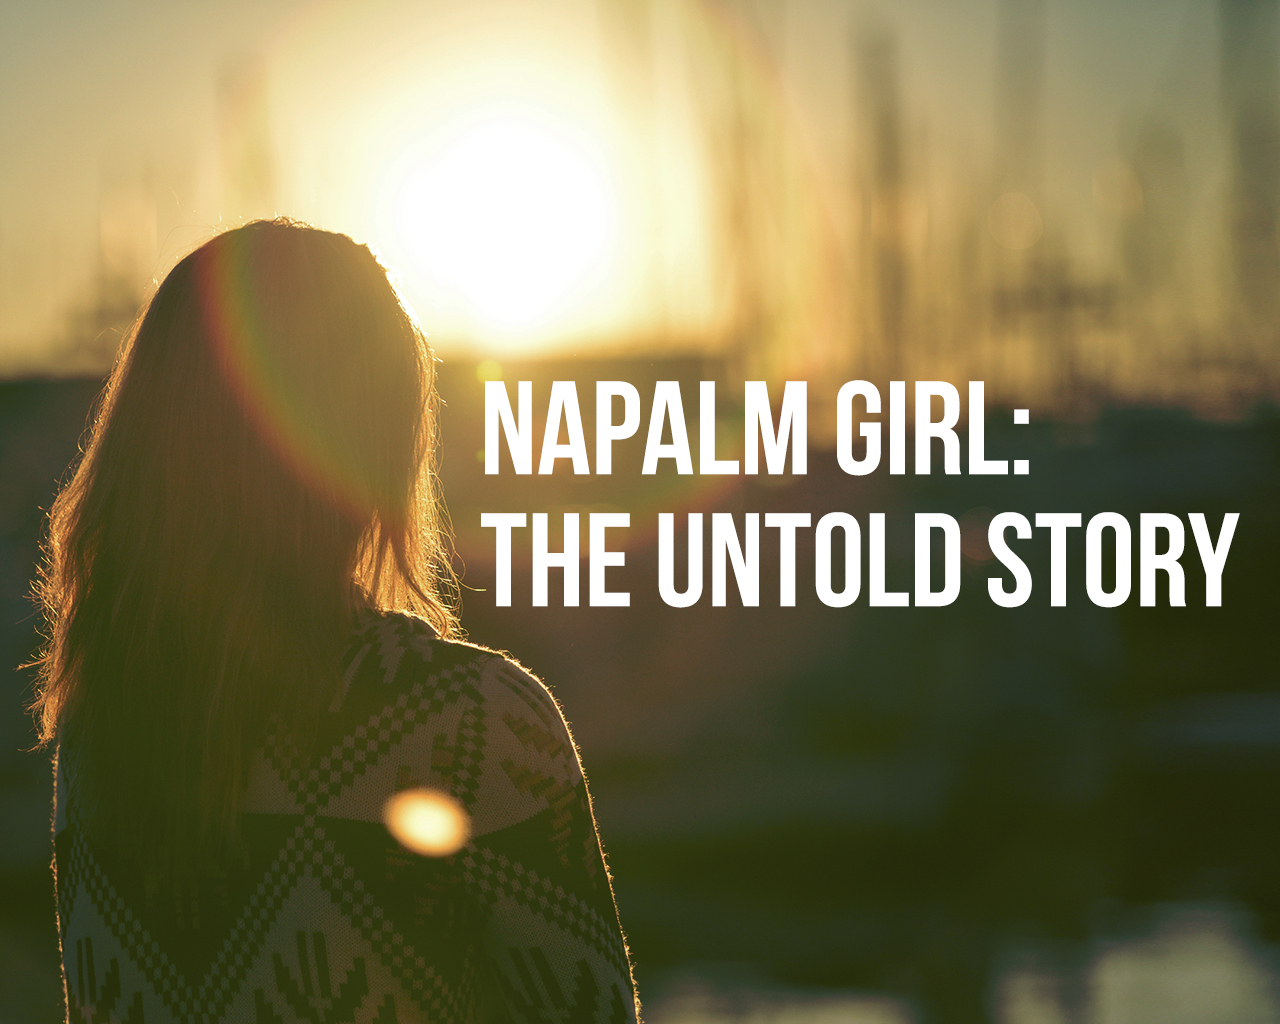 Napalm Girl The Untold Story  Gods Word Today-6116